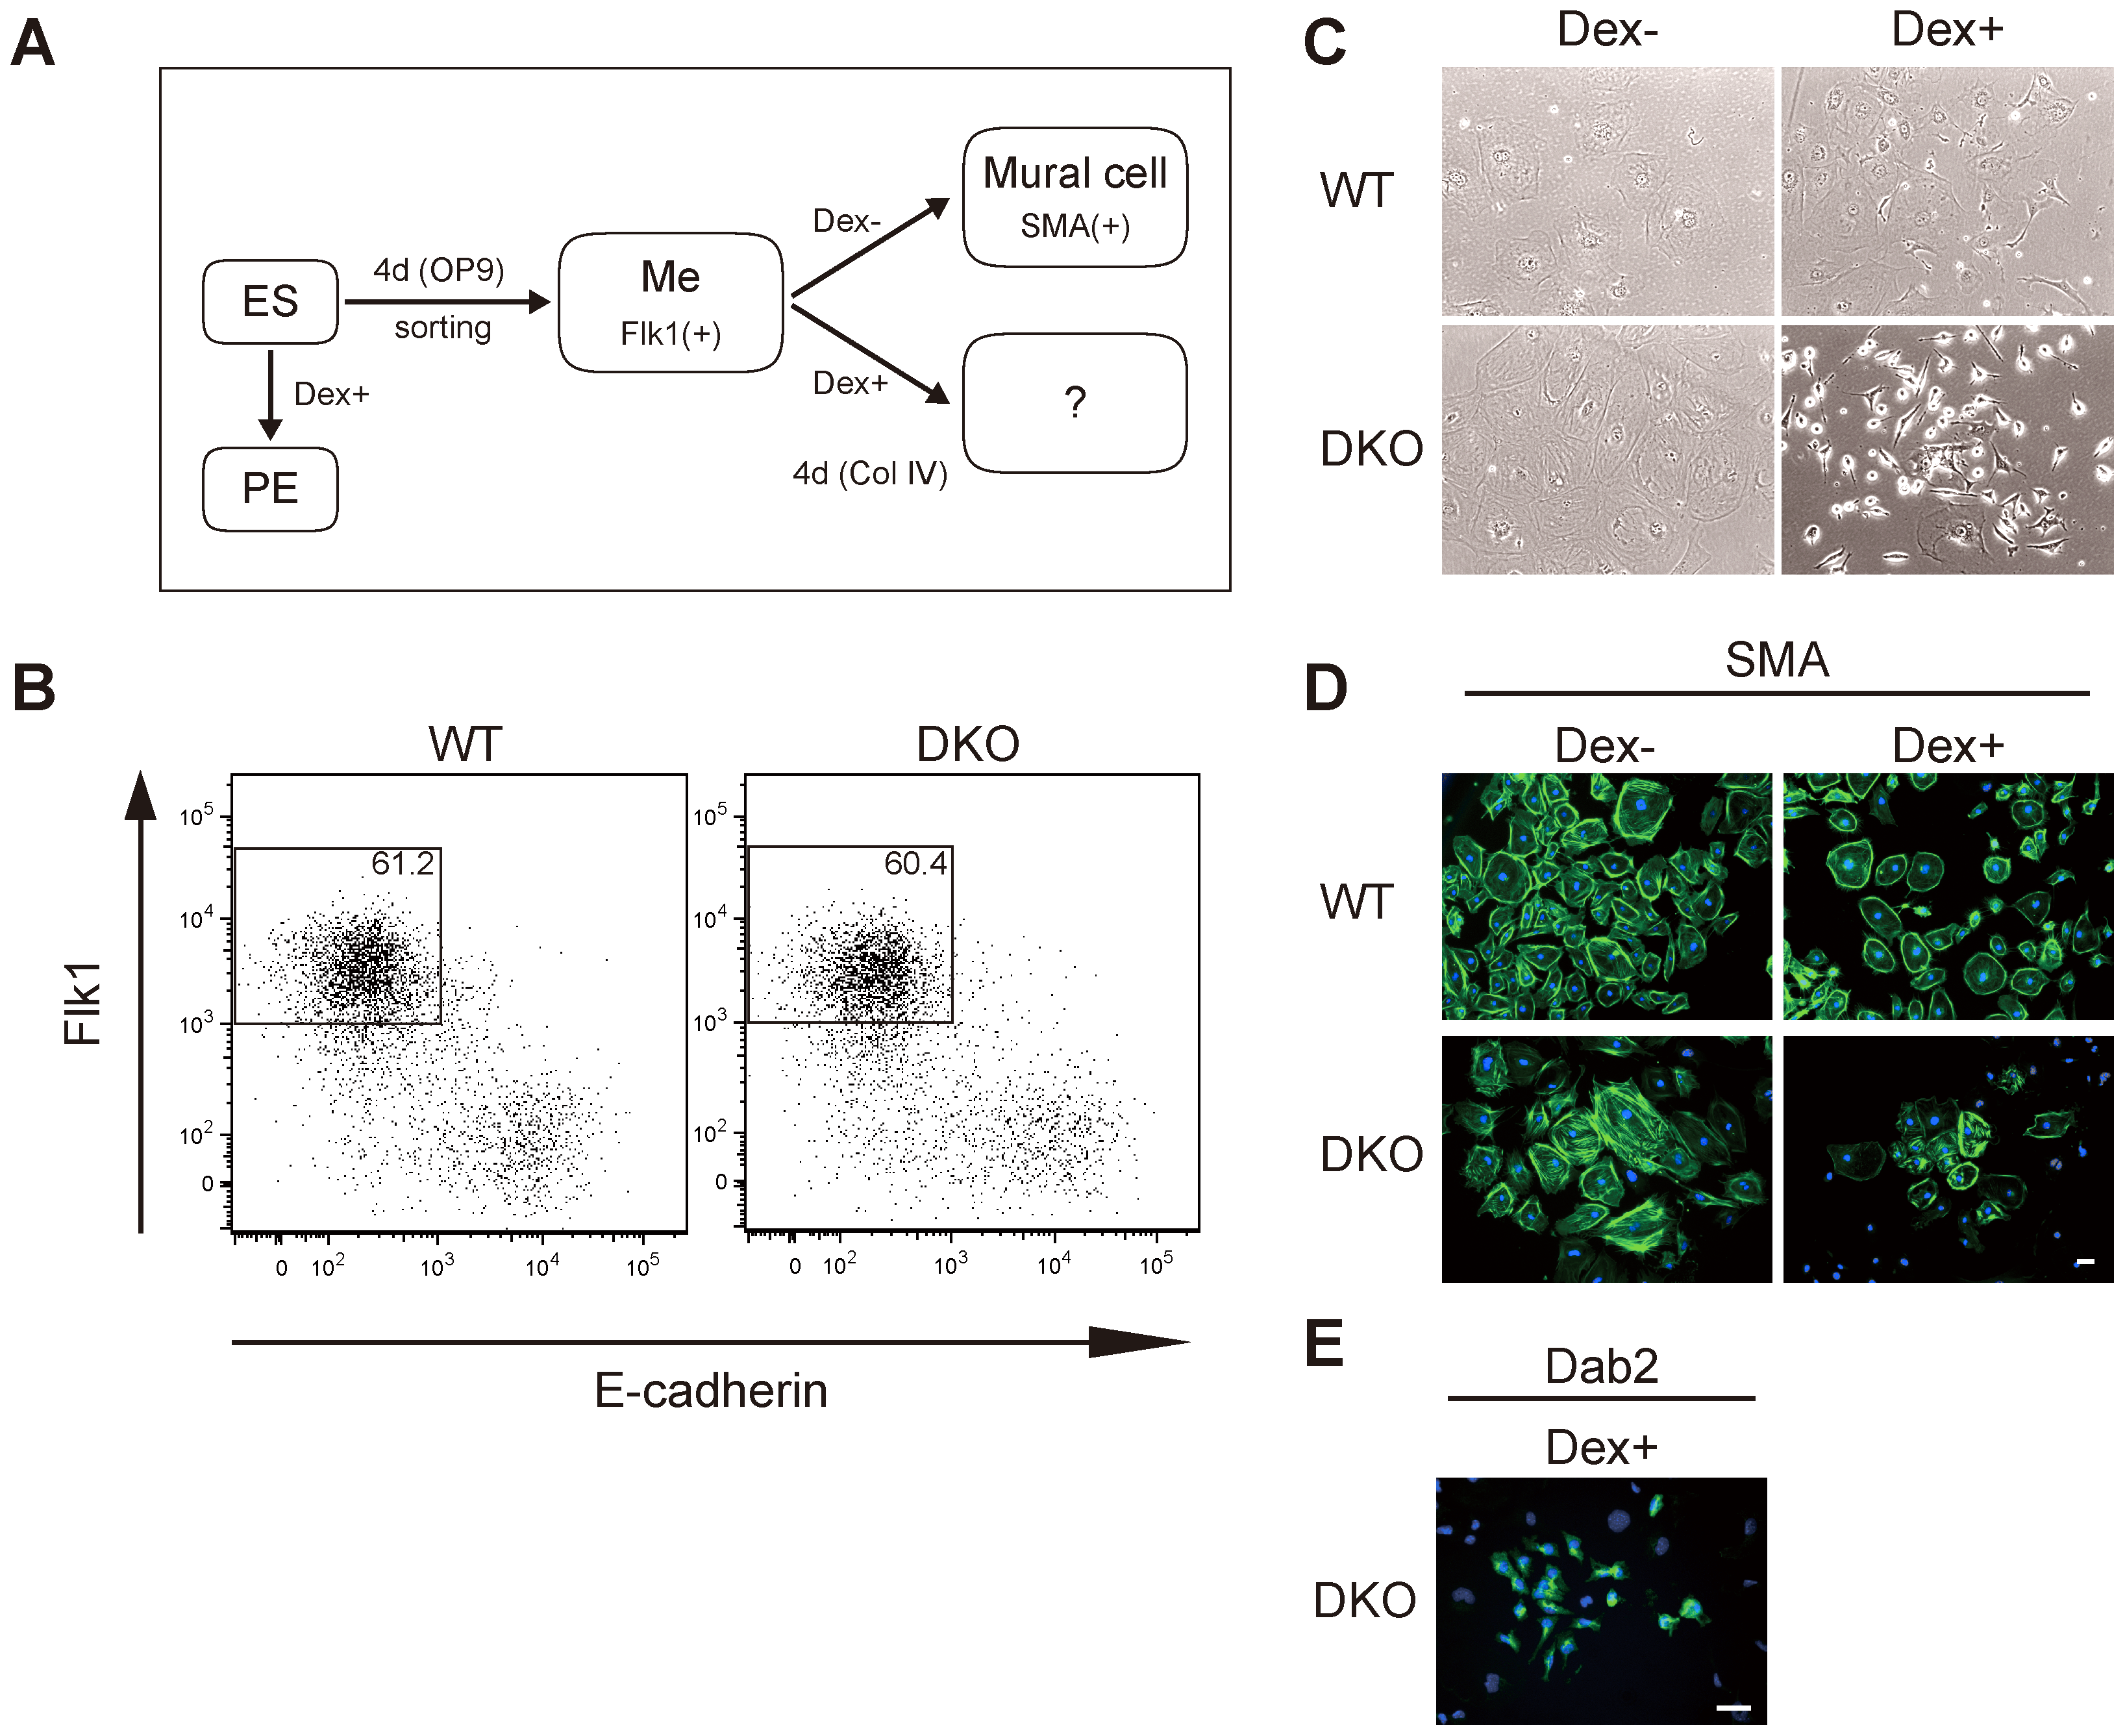 Gata4-induced primitive endoderm differentiation from <i>Dnmt3a</i><sup>−/−</sup><i>Dnmt3b</i><sup>−/−</sup> (DKO) Flk1(+) mesoderm cells derived from OP9 co-culture conditions.